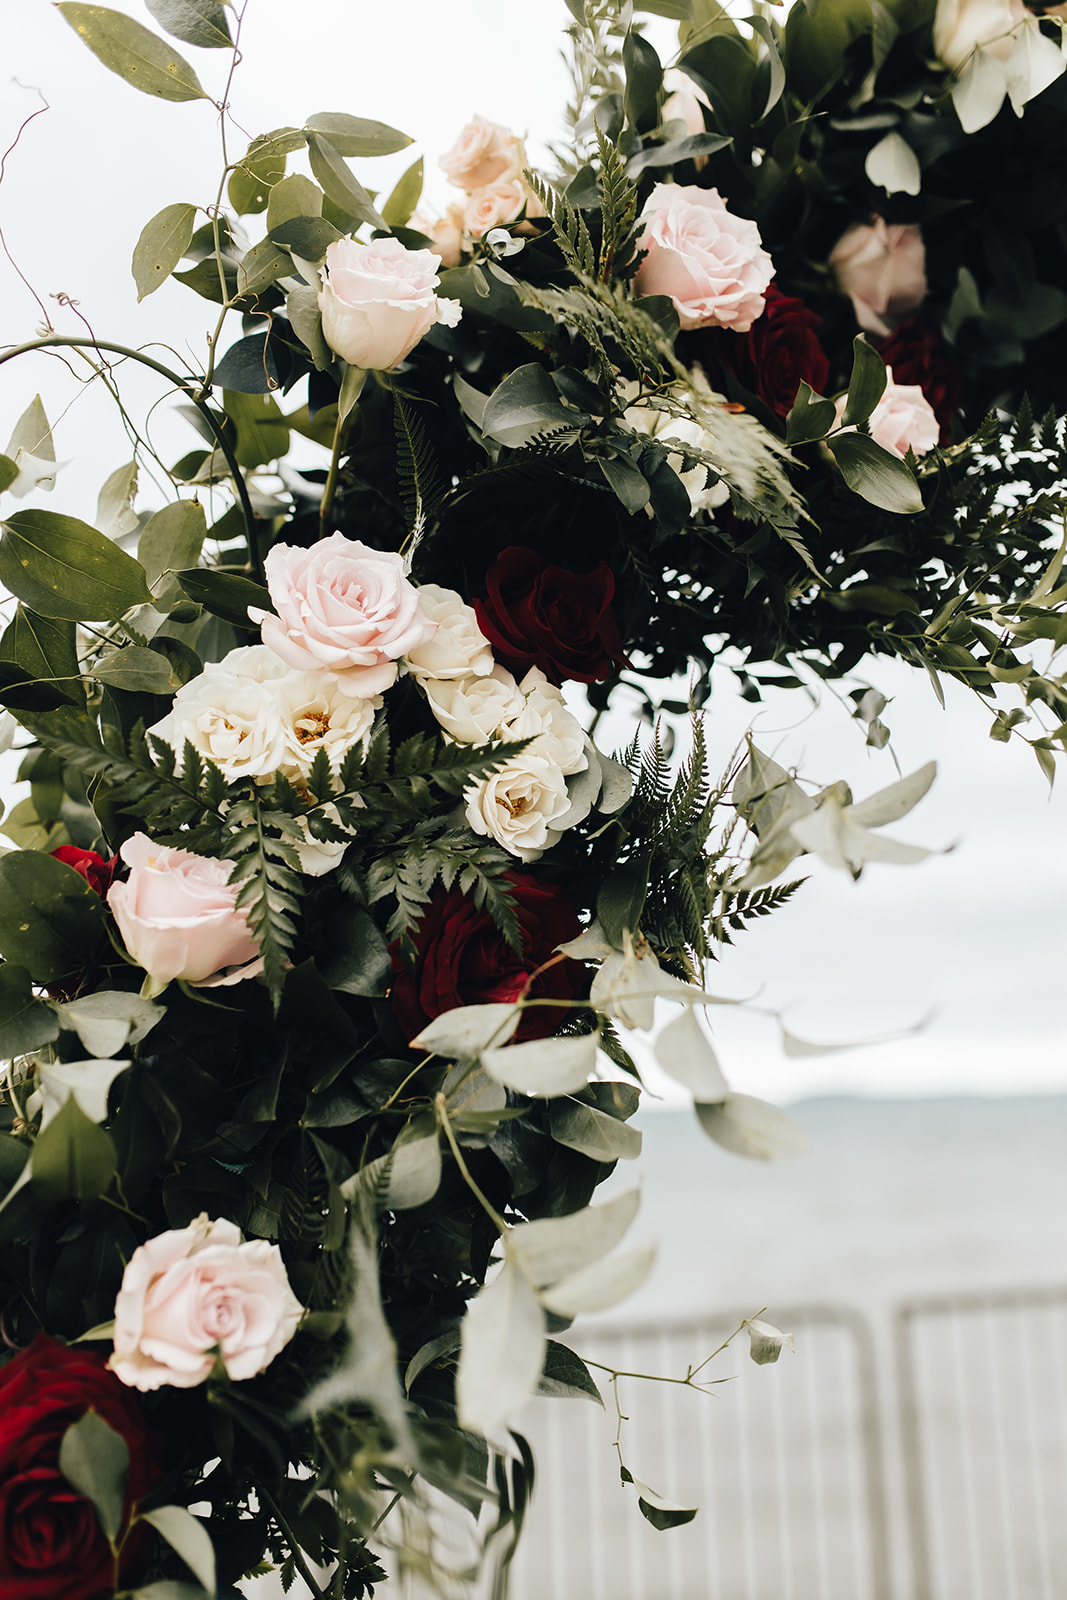 Floral decor on archway of West Bay Beach wedding